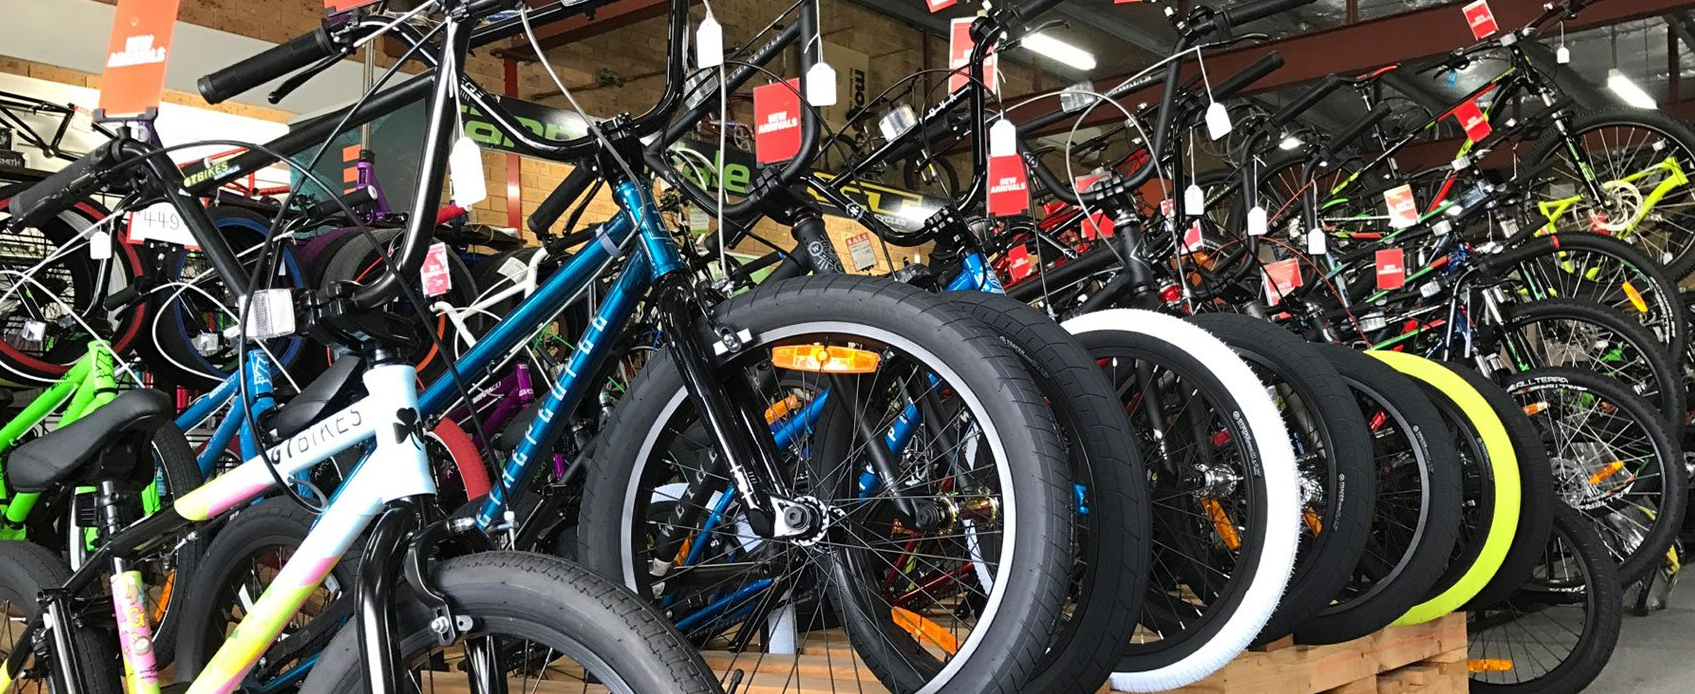 Bicycle: How to choose the type of bike?